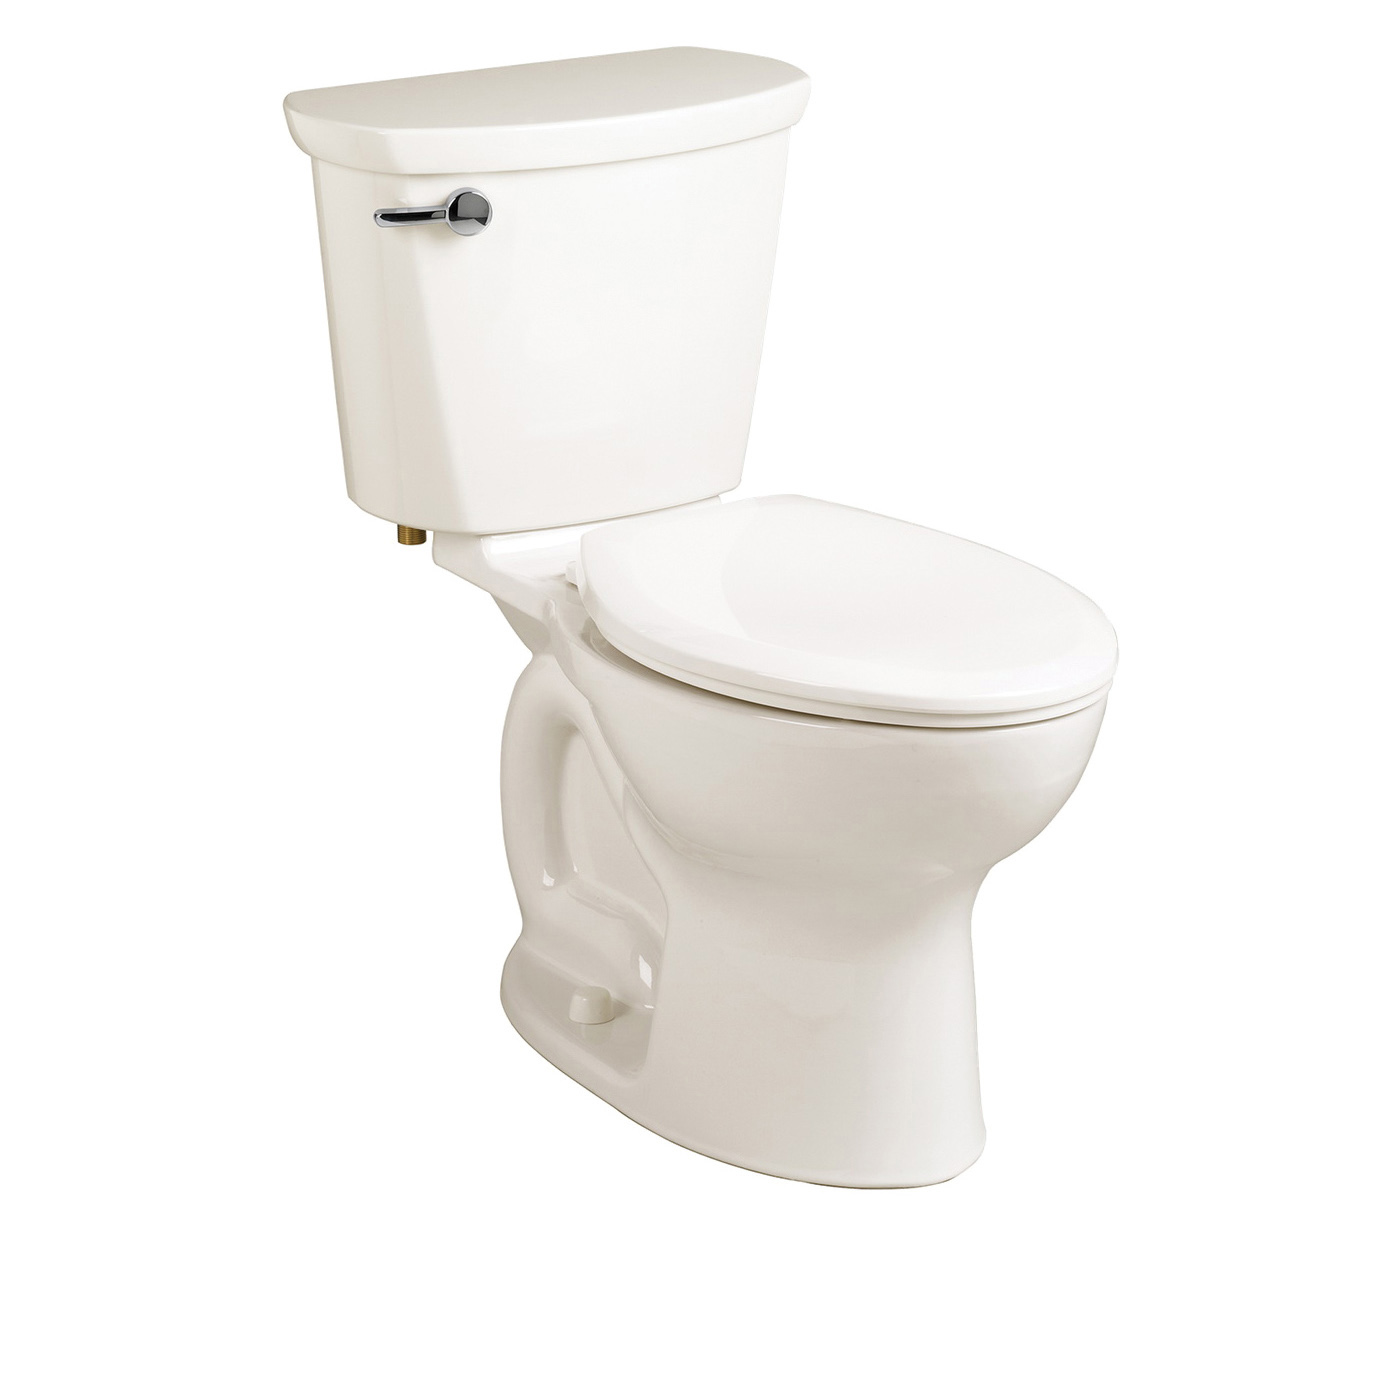 American Standard 215CA104.020 Cadet® Pro™ 2-Piece Toilet, Elongated Bowl, 15 in H Rim, 12 in Rough-In, 1.28 gpf Flush Rate, White, Import